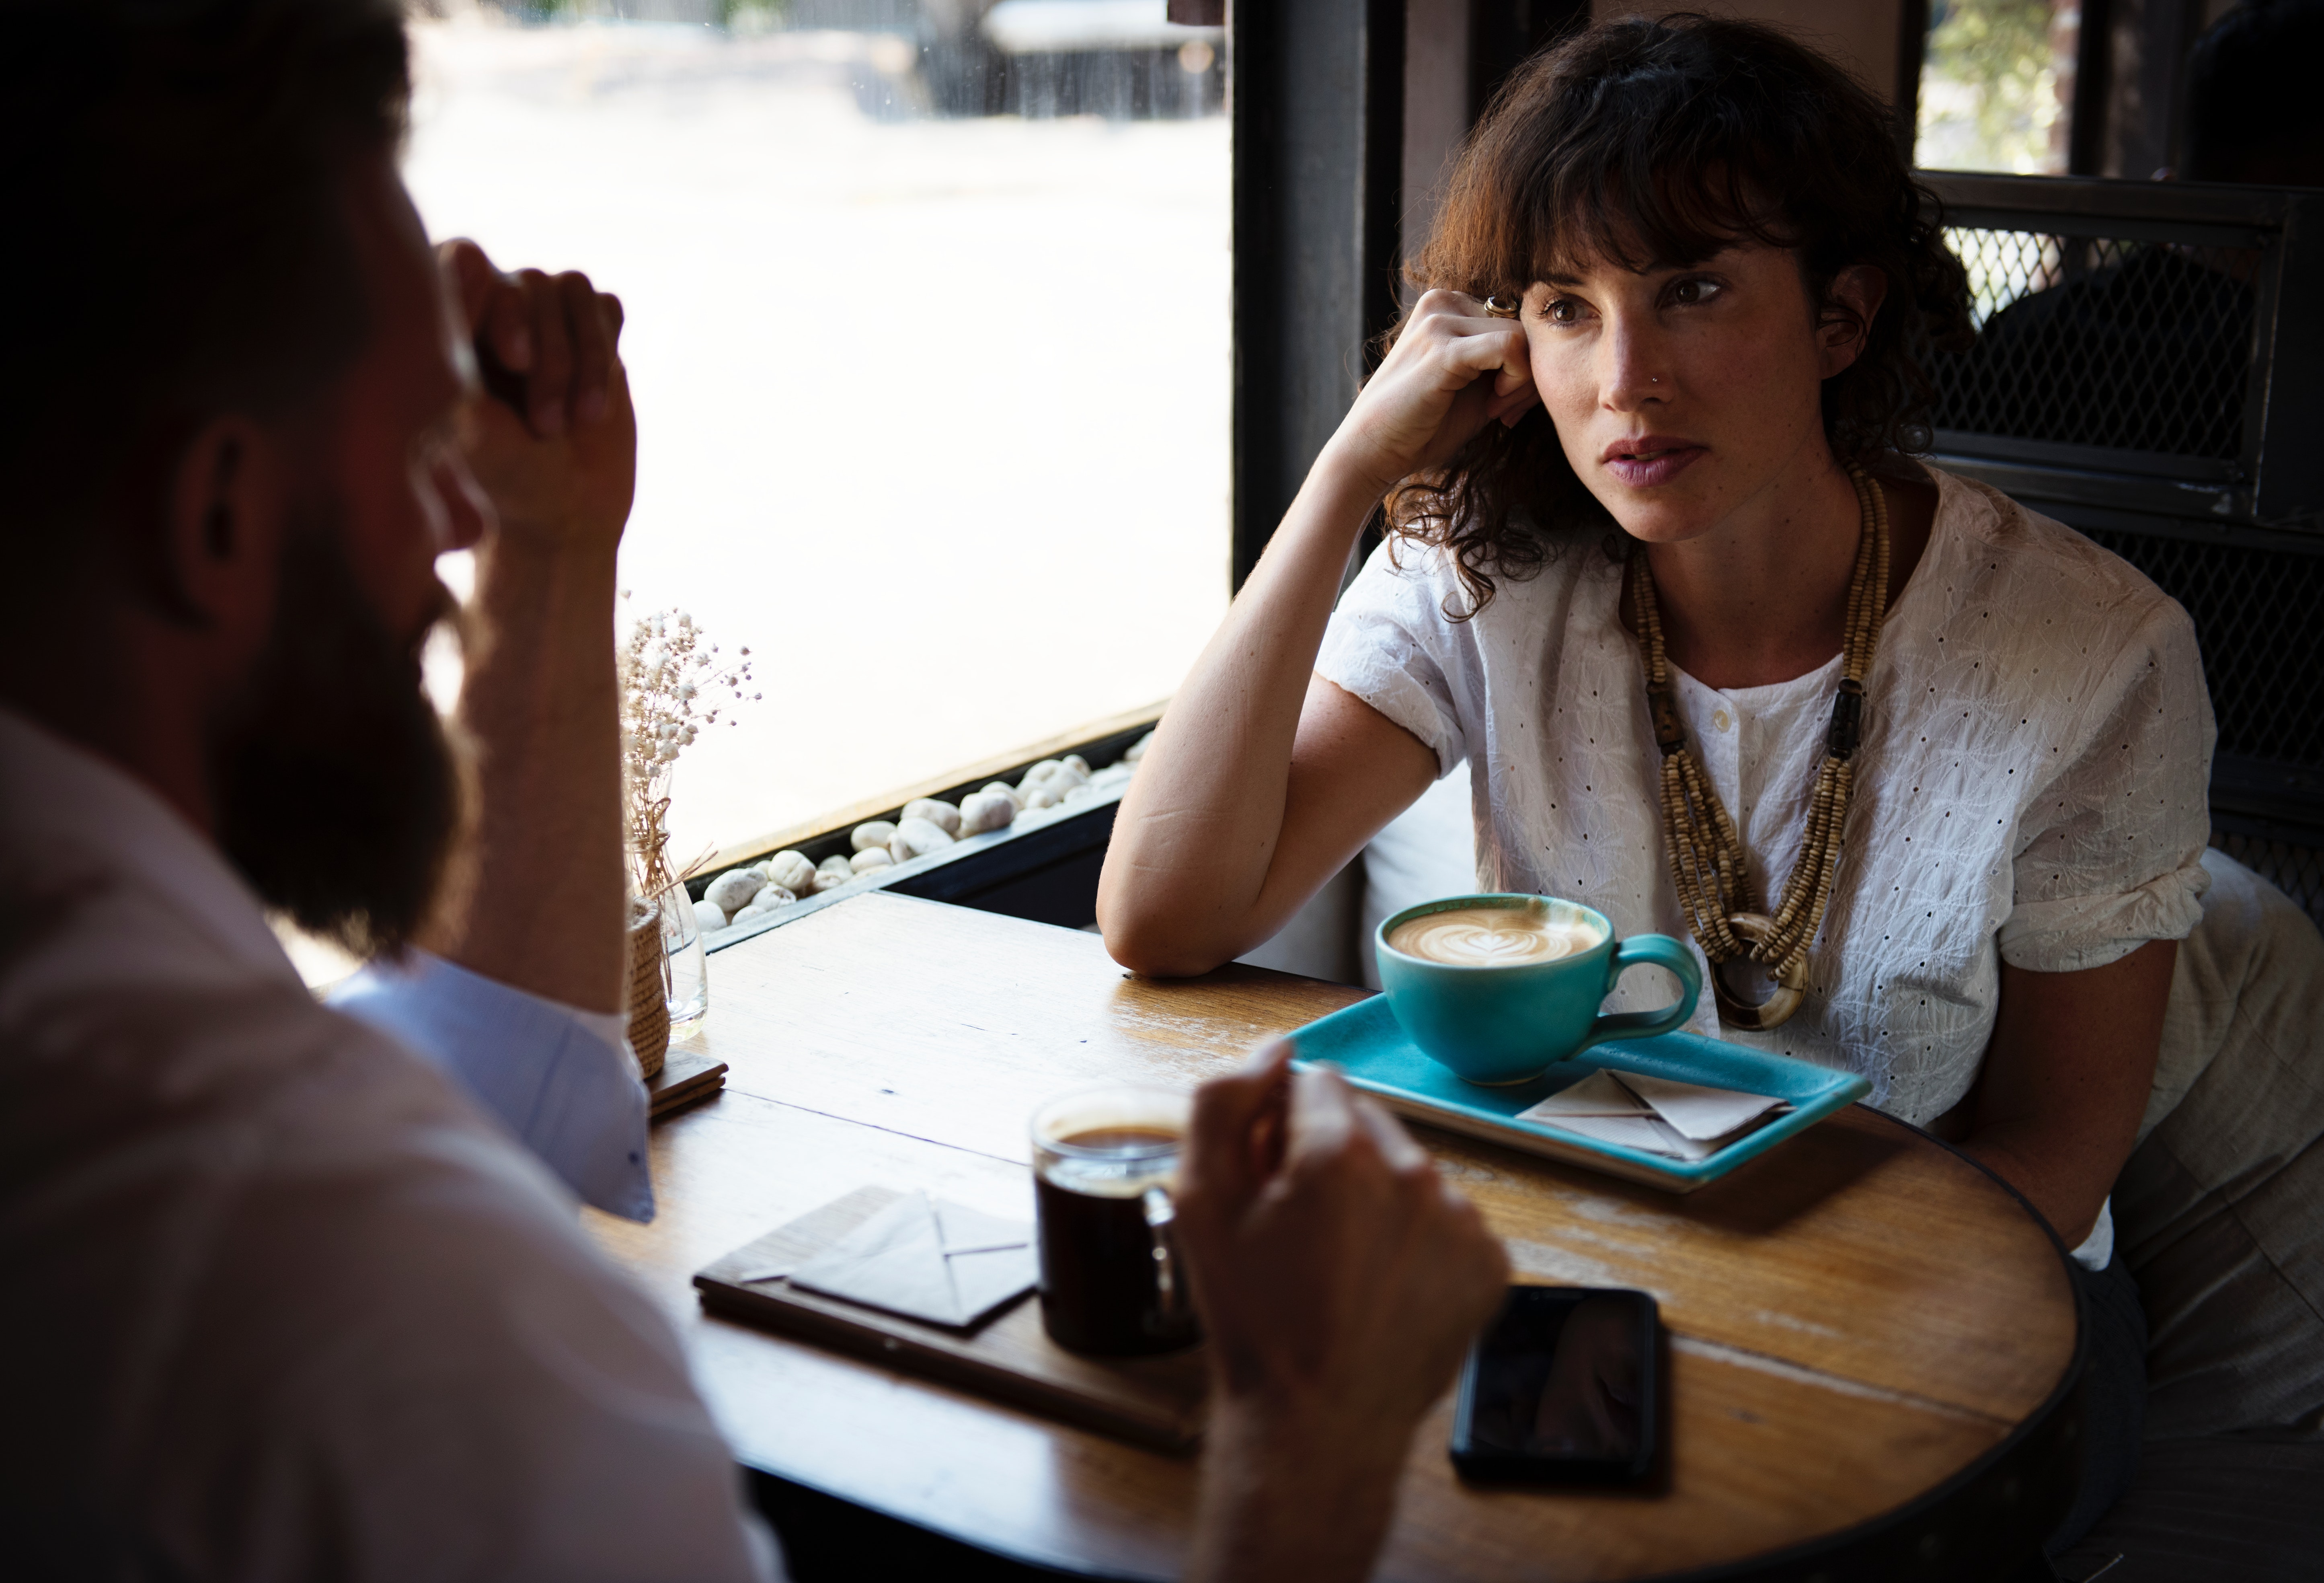 Photograph of a man and a woman having a conversation over a cup of coffee at a cafe